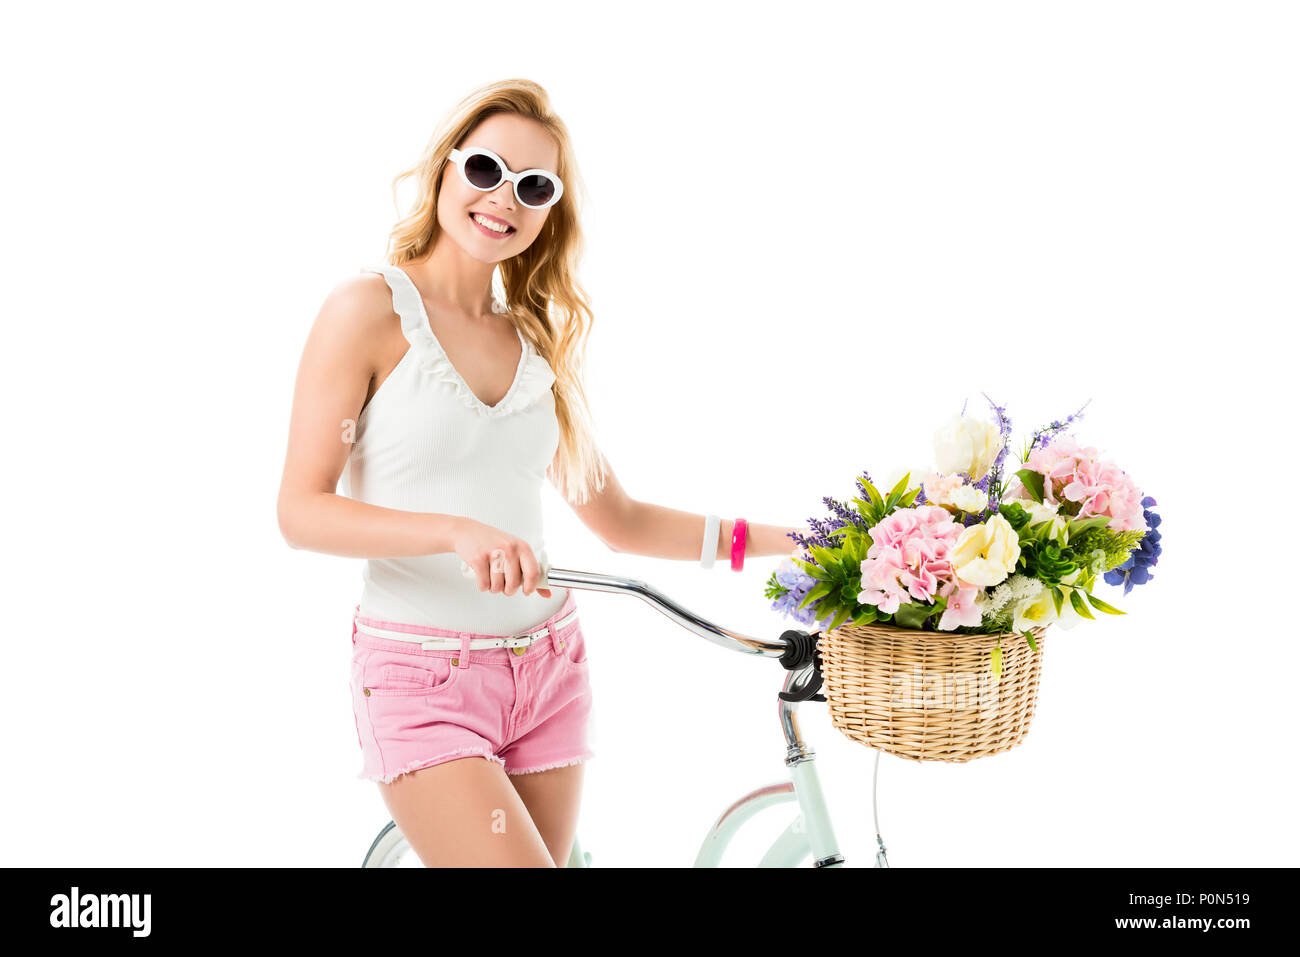 Blonde woman in sunglasses holding bicycle with flowers in basket isolated on white - Stock Image